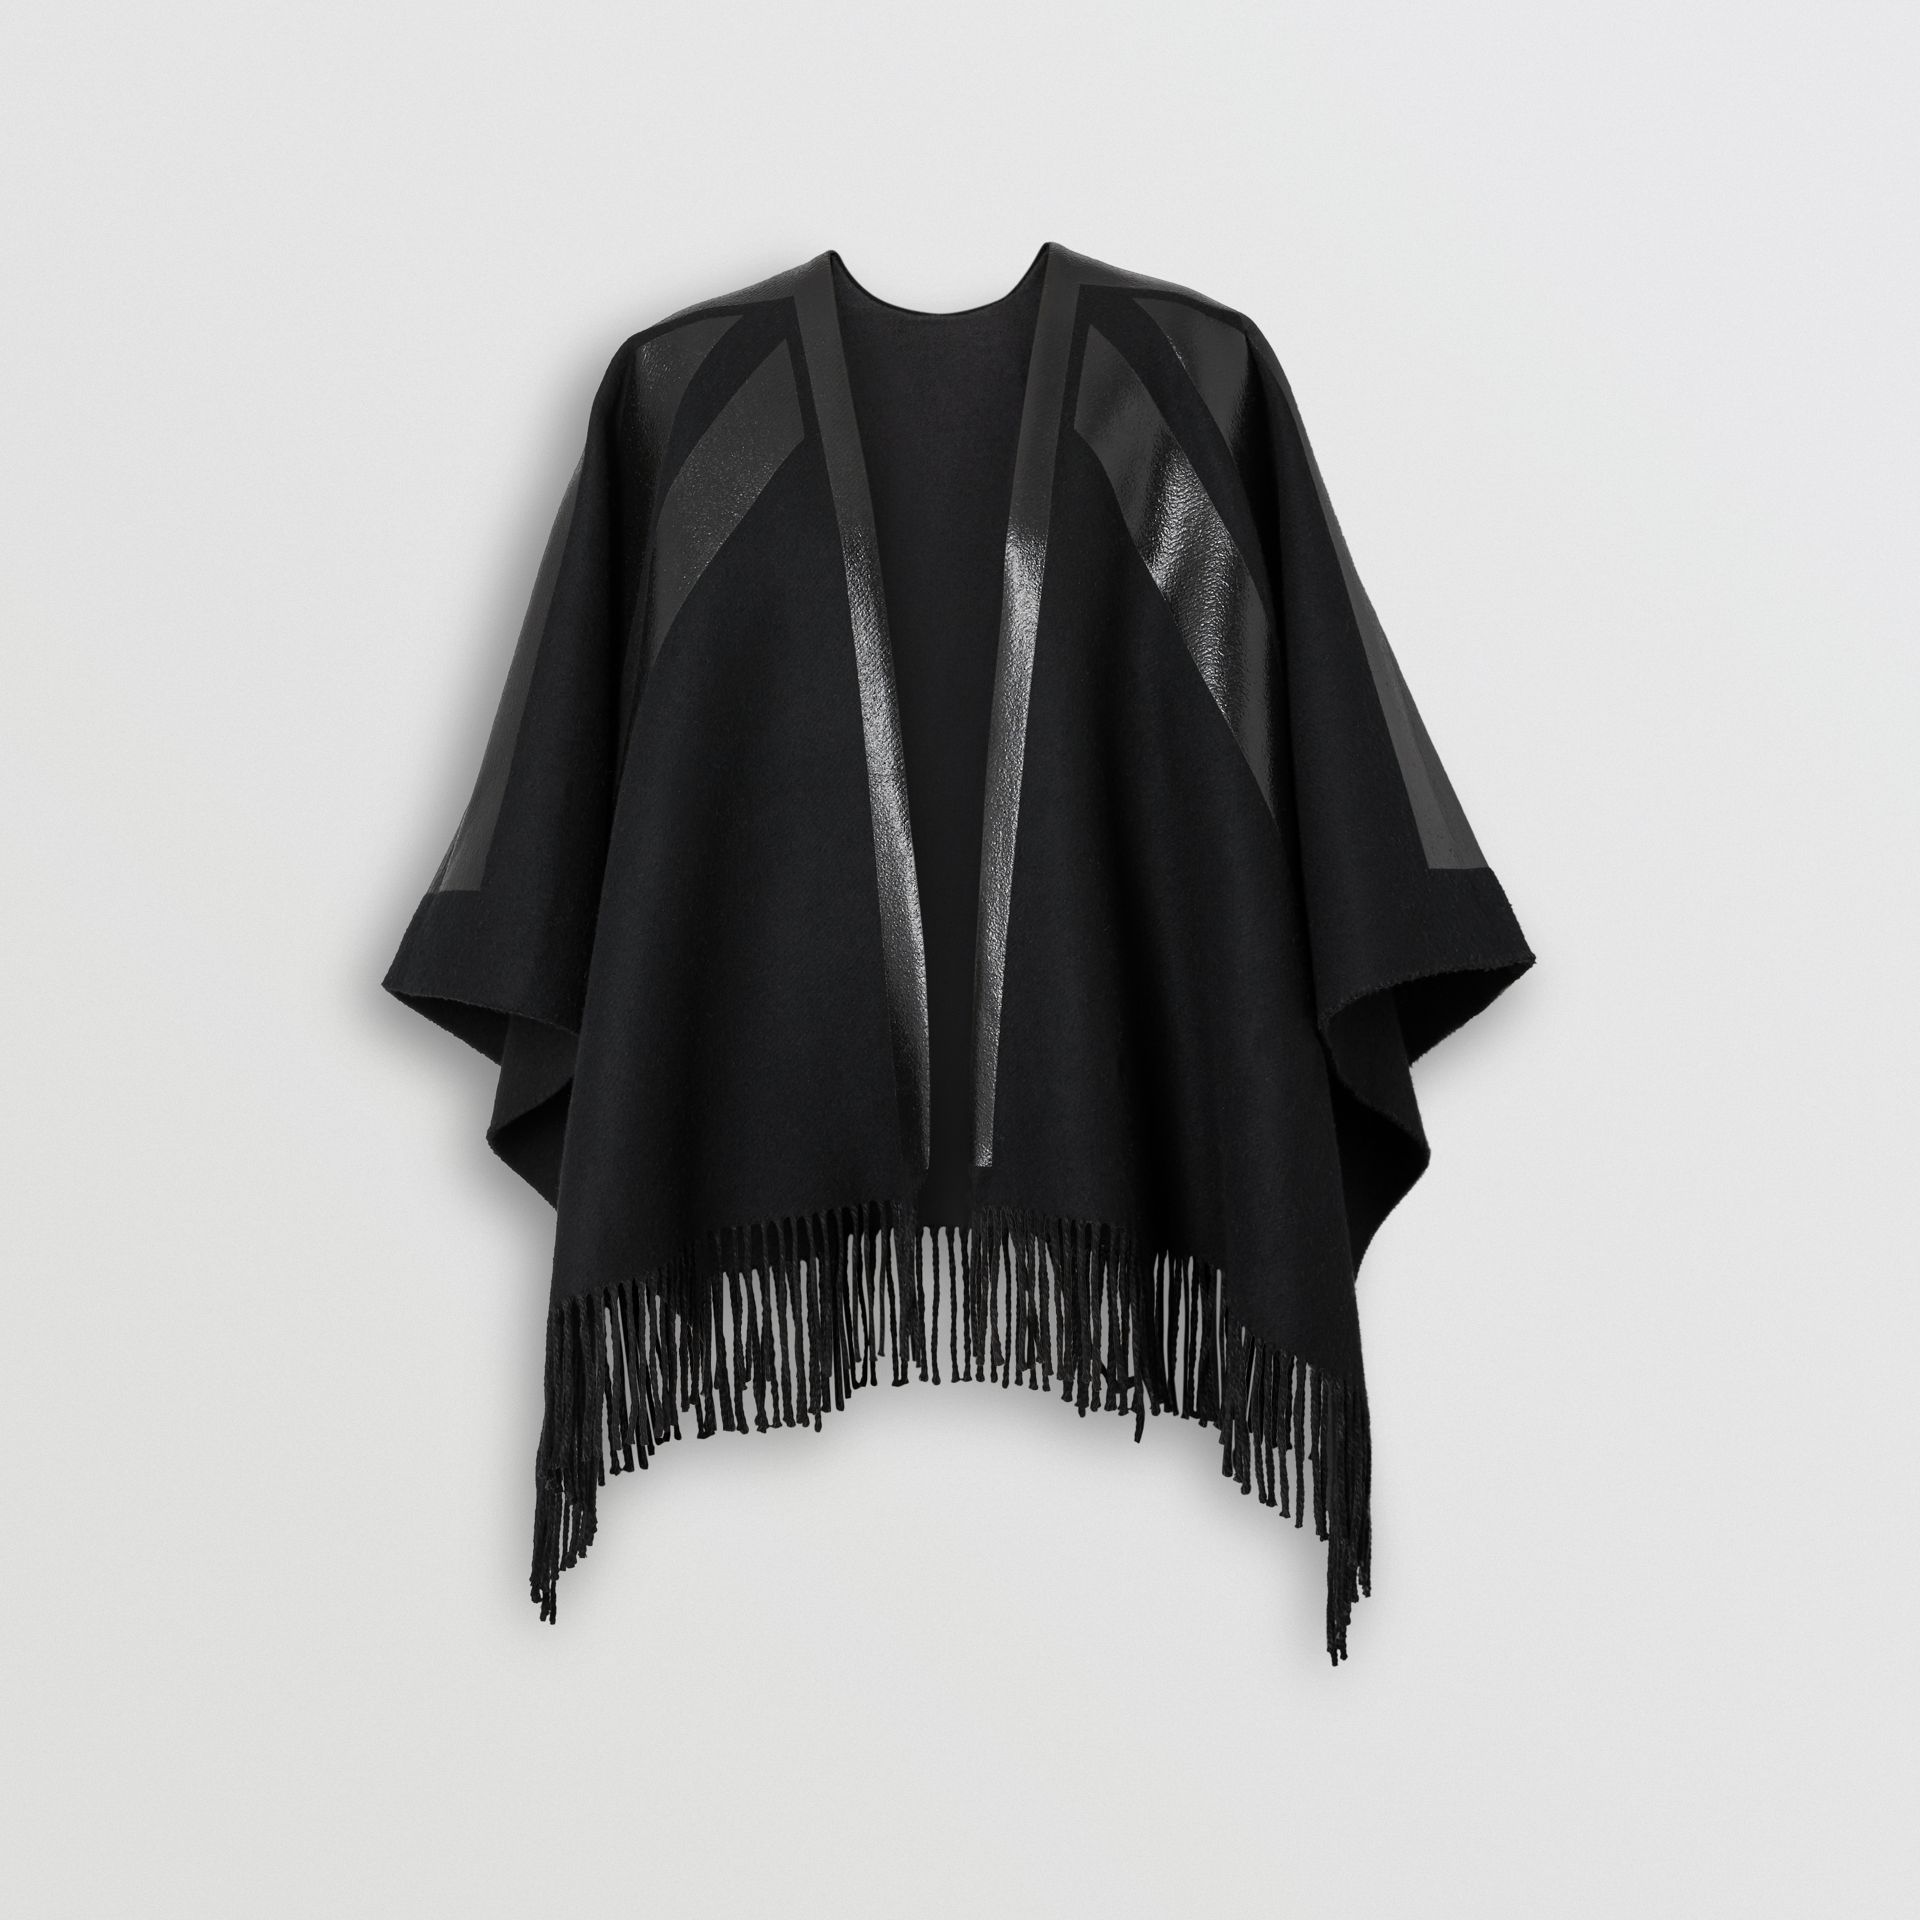 Union Jack Print Wool Cashmere Cape in Black - Women | Burberry - gallery image 3